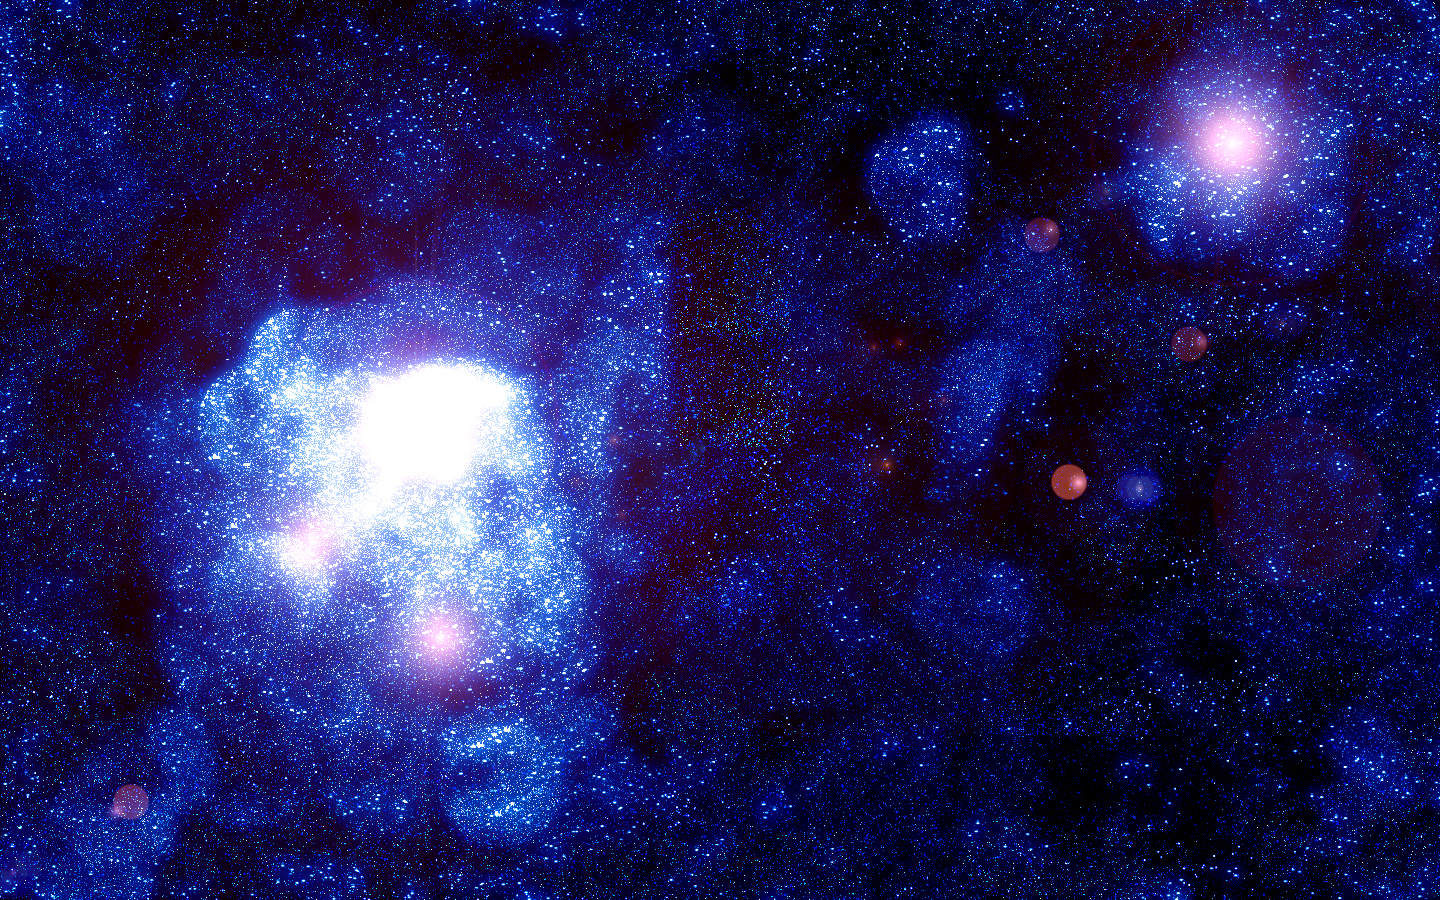 starfield1.jpg - starfield made in photoshop from scratch